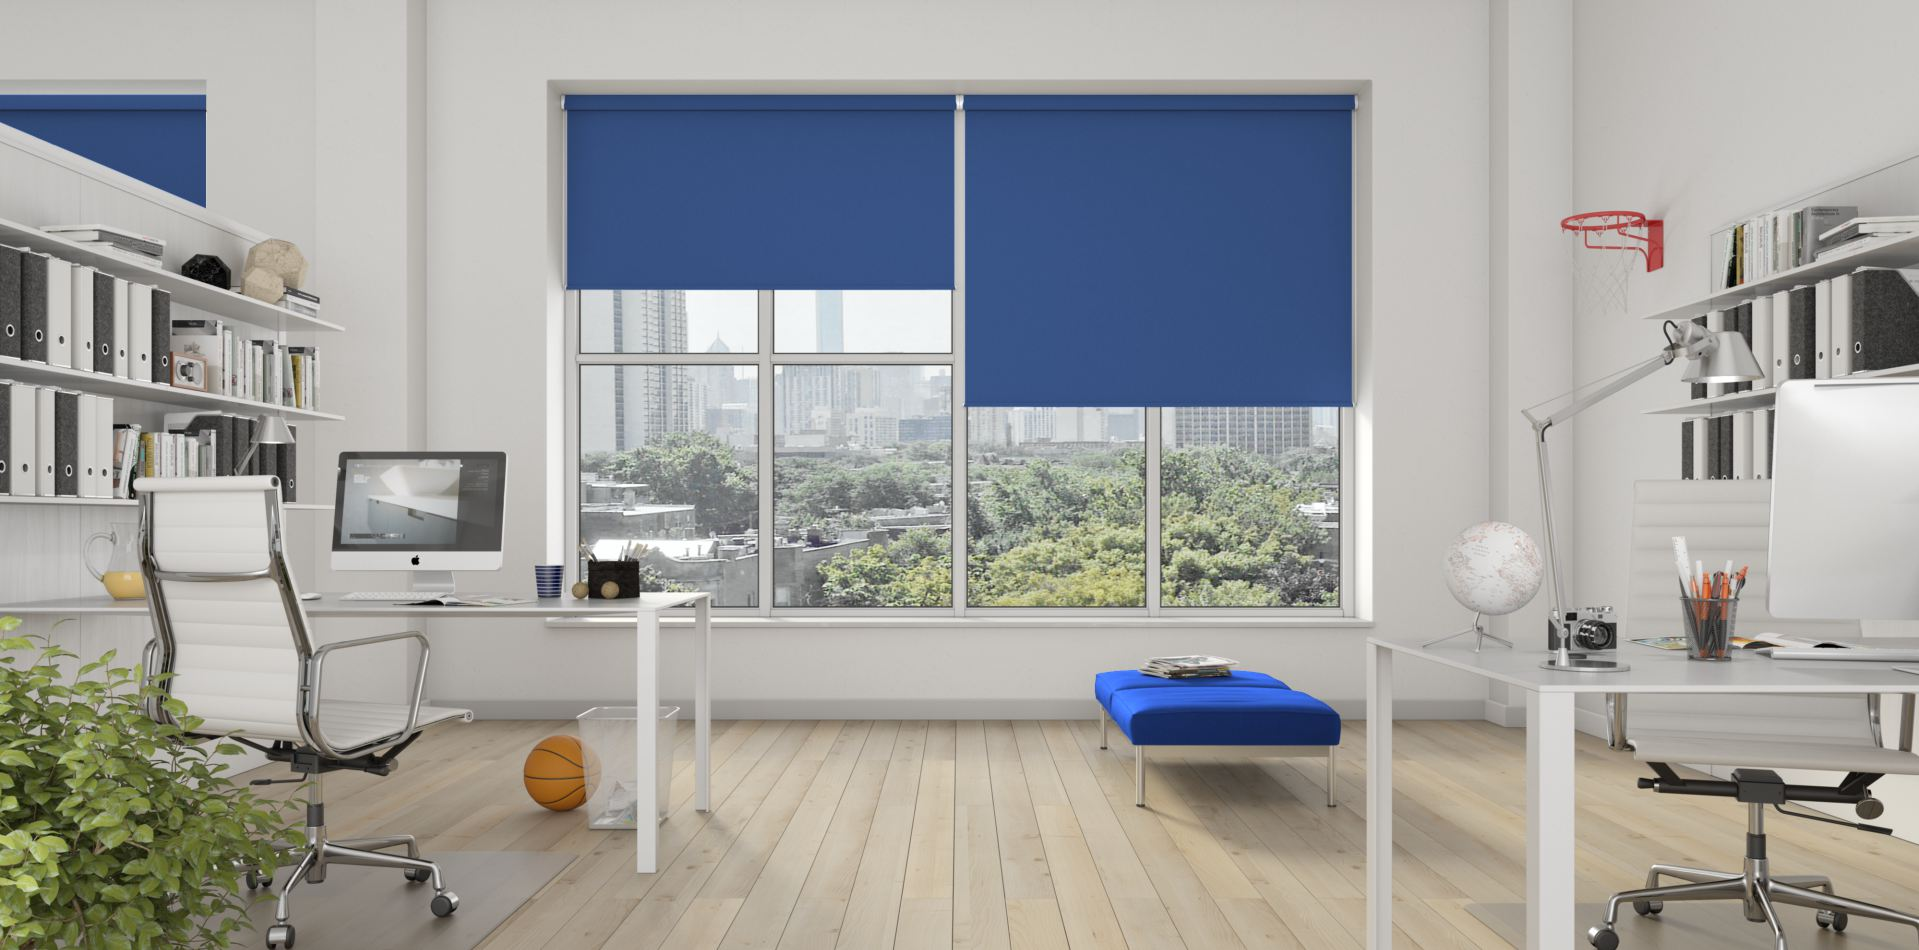 Banlight Duo Glacier Blue blinds in an office